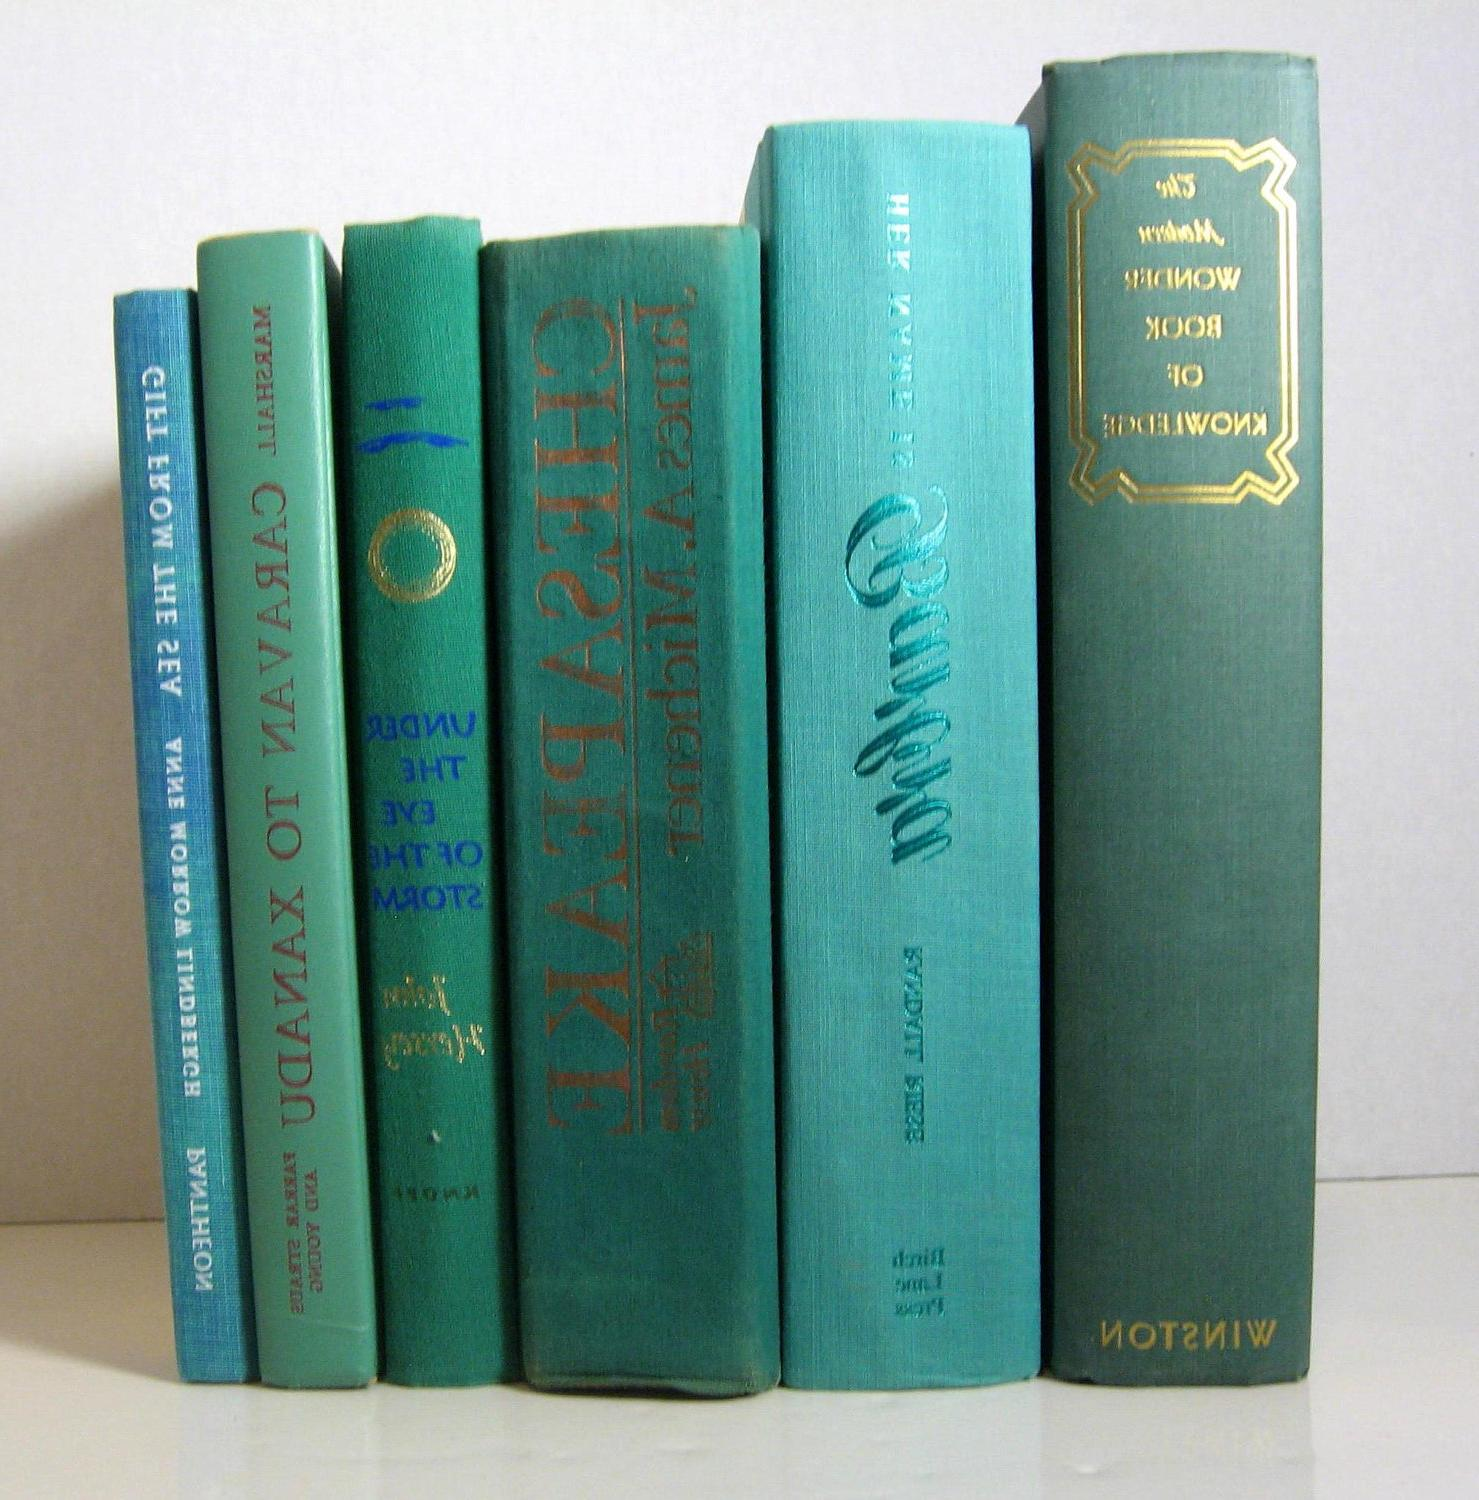 Vintage Instant Book Decor Collection of Teal Blue, Turquoise and Green